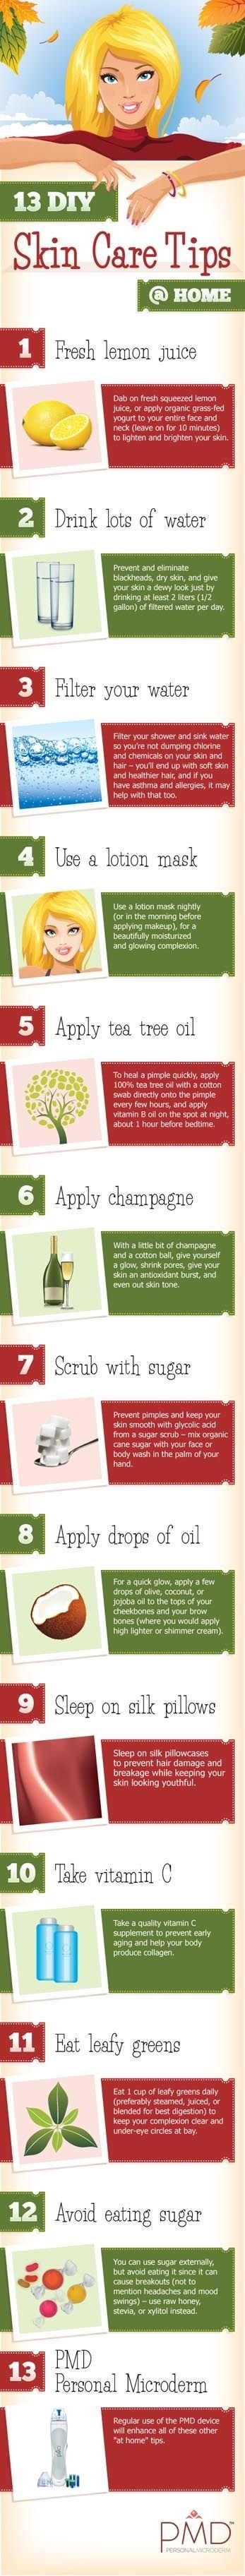 13 DIY Skin Care Tips @ Home #infographic